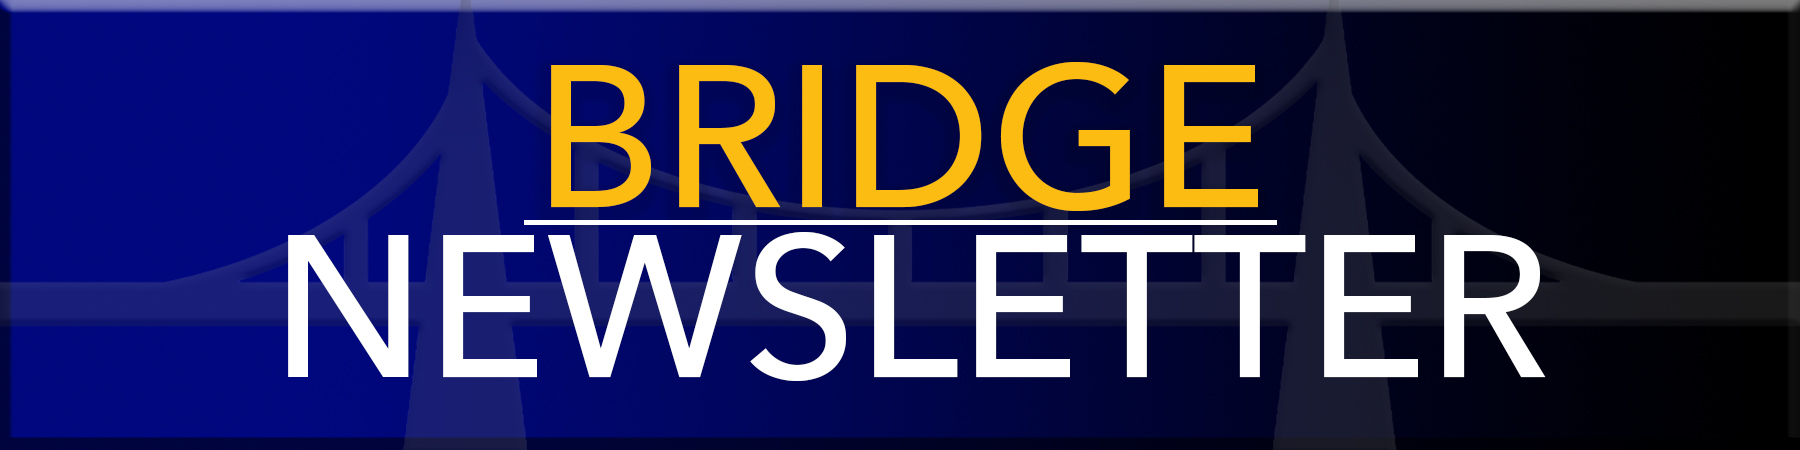 Bridge Newsletter